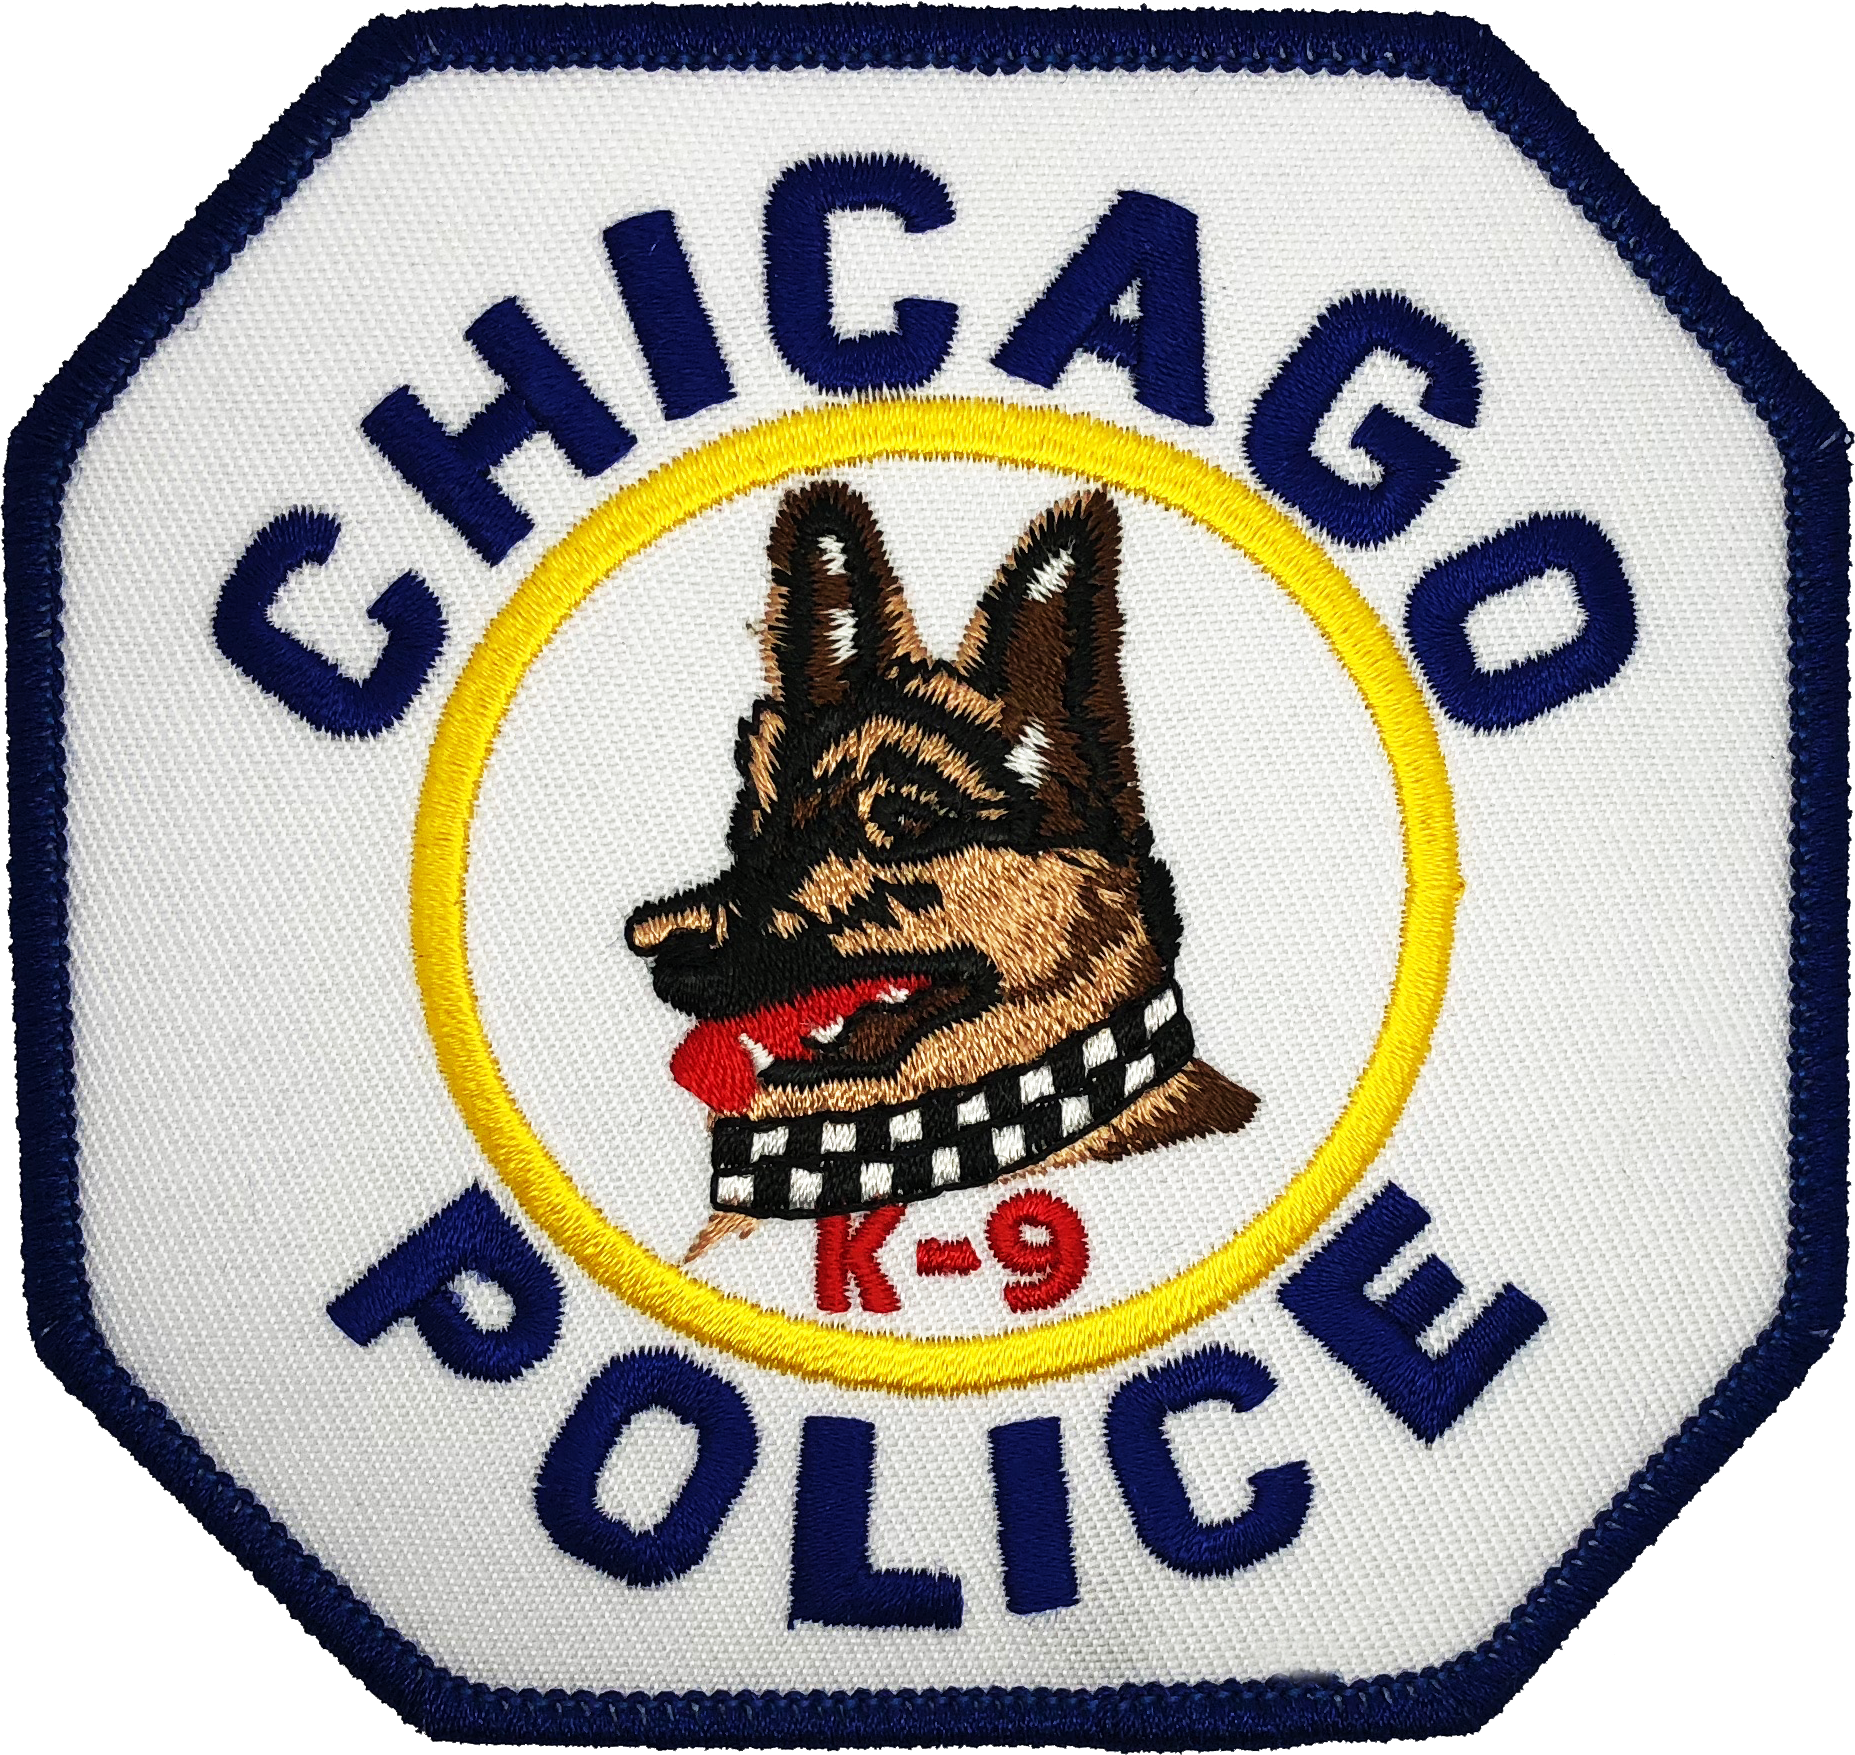 US State of Illinois, Chicago Police Department K9 Unit